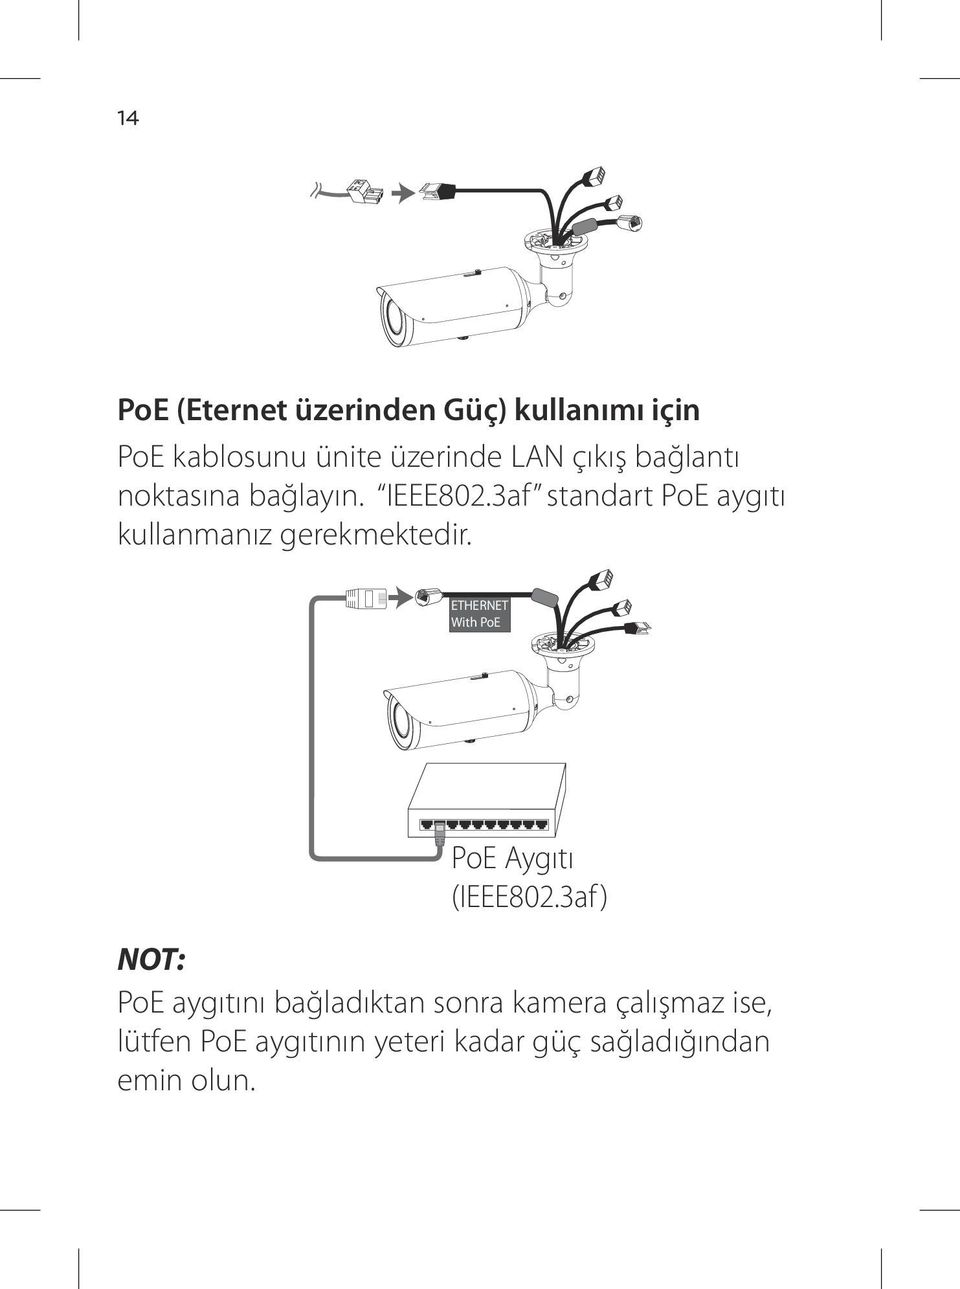 ETHERNET With PoE ETHERNET With PoE PoE Aygıtı (IEEE802.